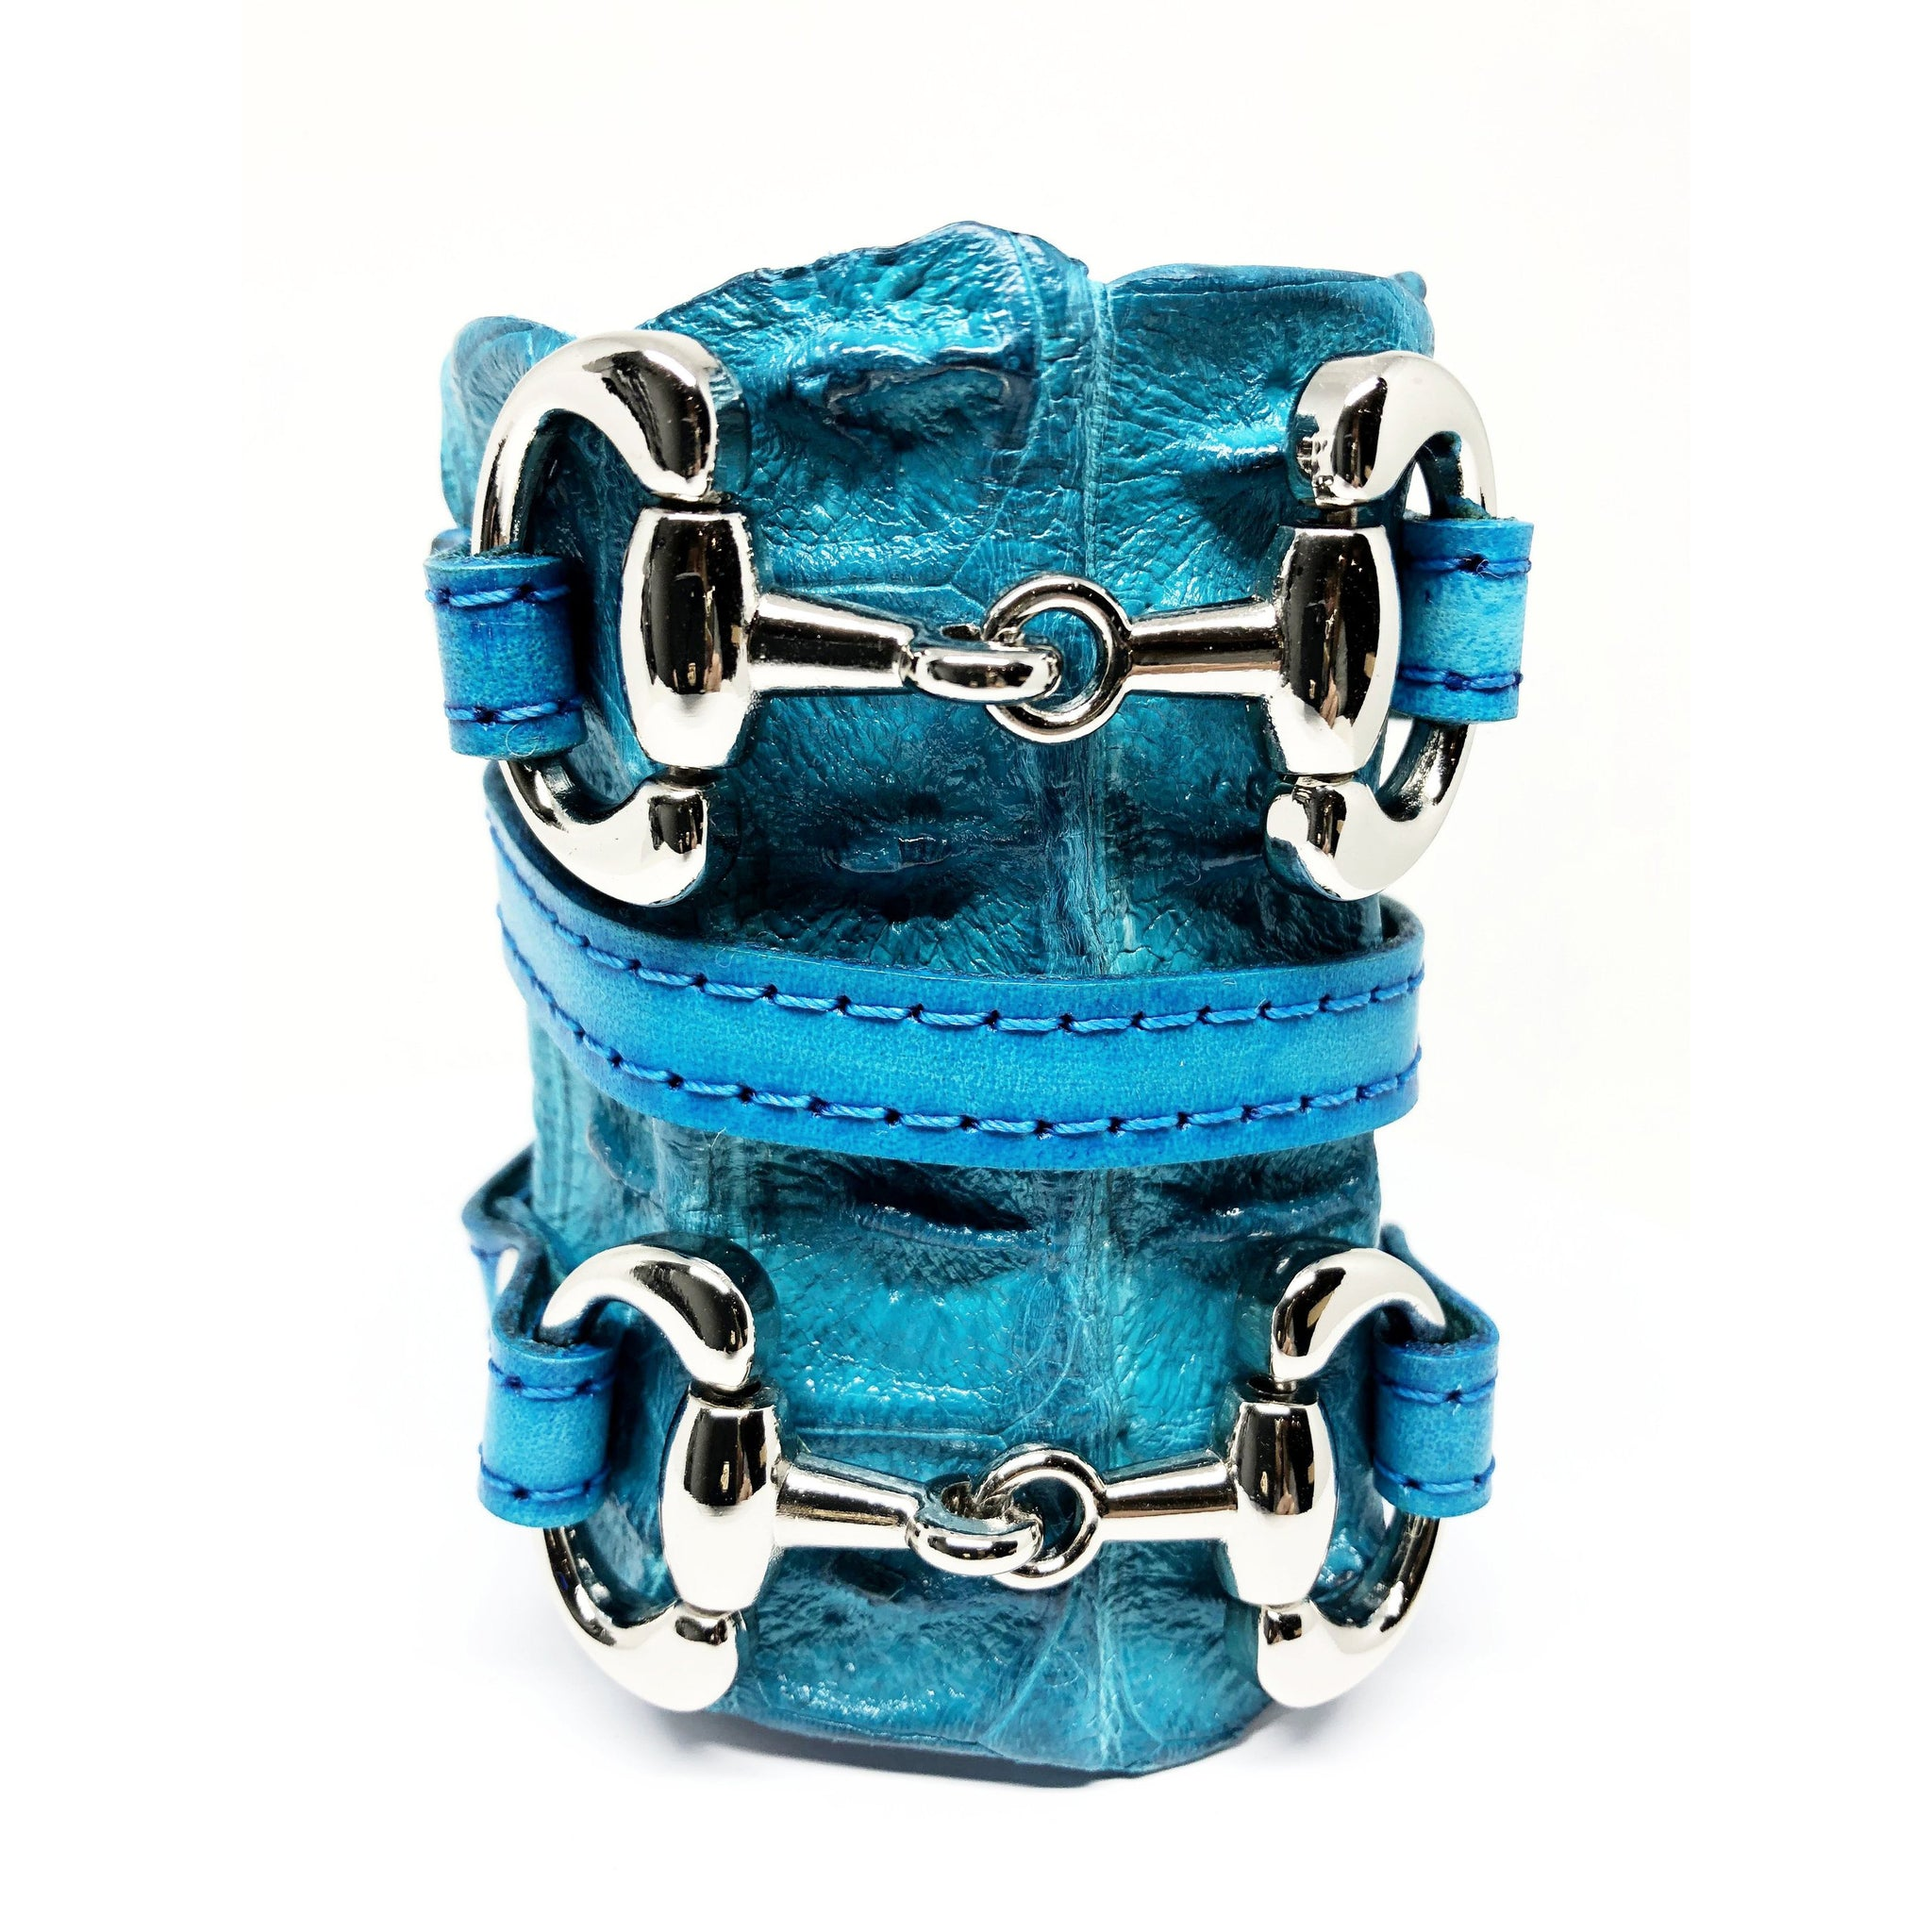 FARM-RAISED CROCODILE LEATHER CUFF WITH 2 D-RING HORSE BITS AND ADJUSTABLE BUCKLE. By Nyet Jewelry